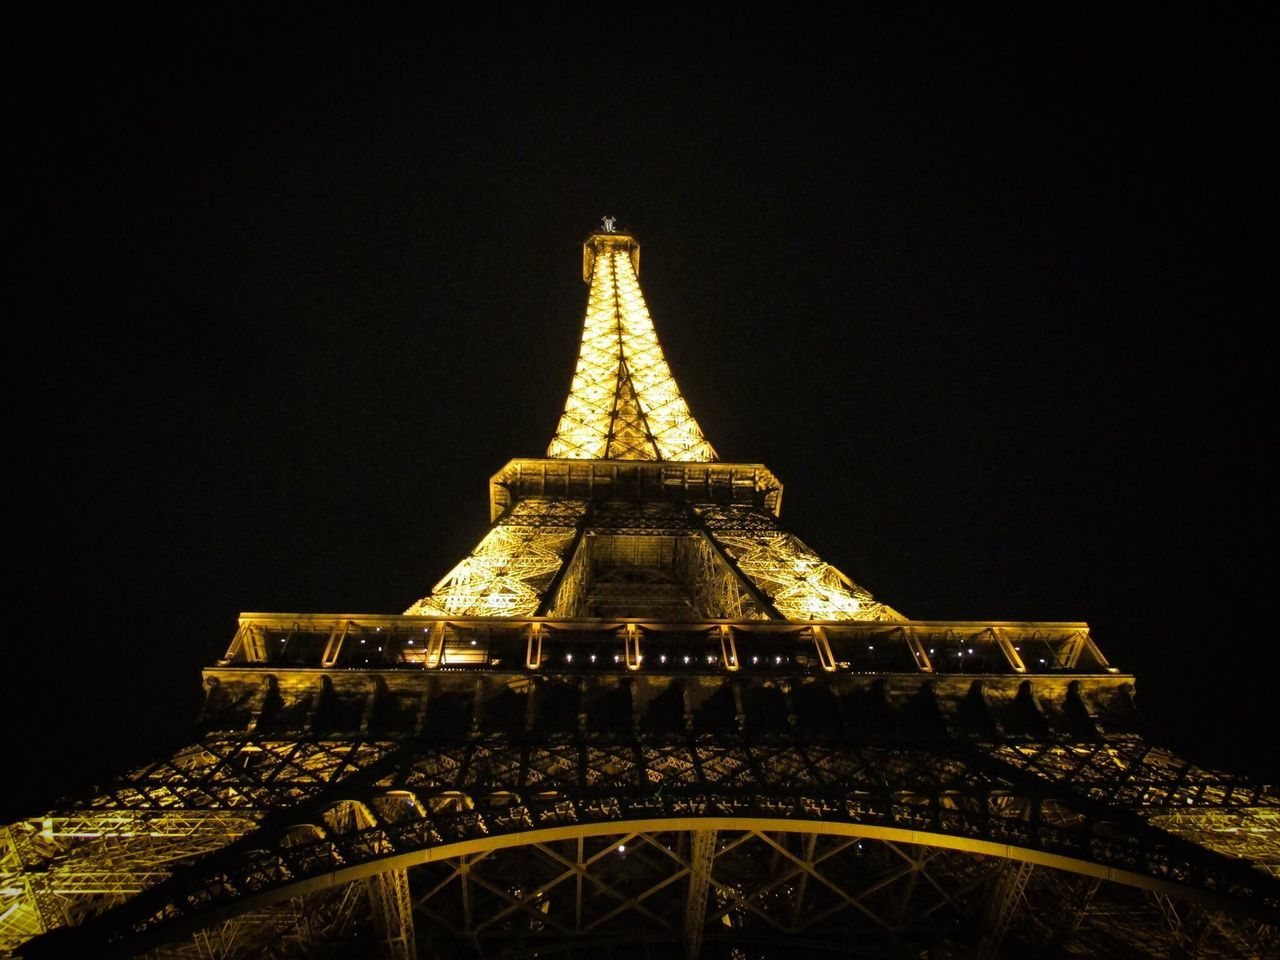 architecture, built structure, low angle view, travel destinations, tower, building exterior, tourism, copy space, history, no people, travel, outdoors, night, illuminated, clear sky, sky